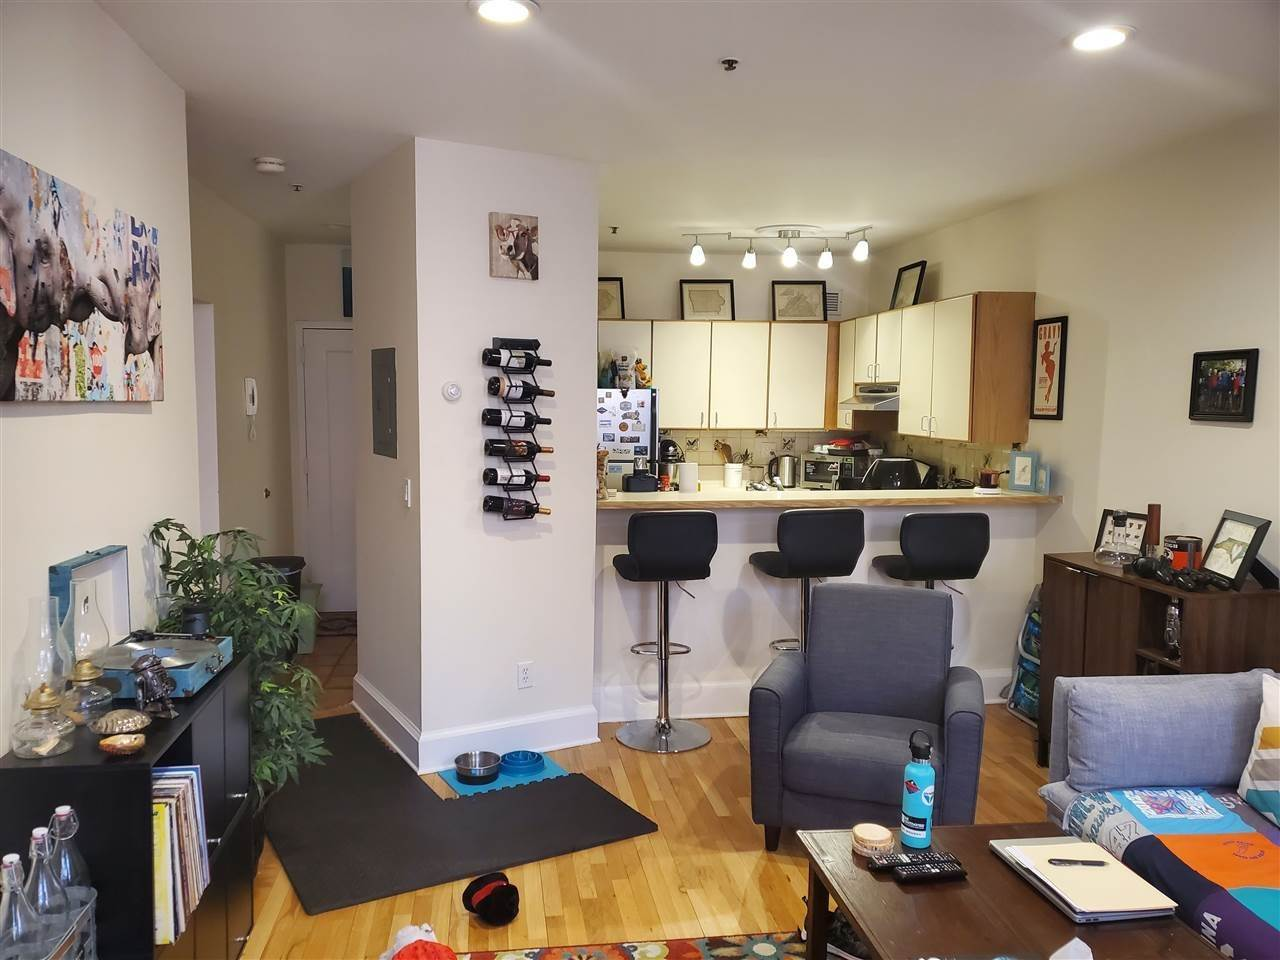 Single Family Home for Rent at 1115 WILLOW AVENUE #304 Hoboken, New Jersey, 07030 United States